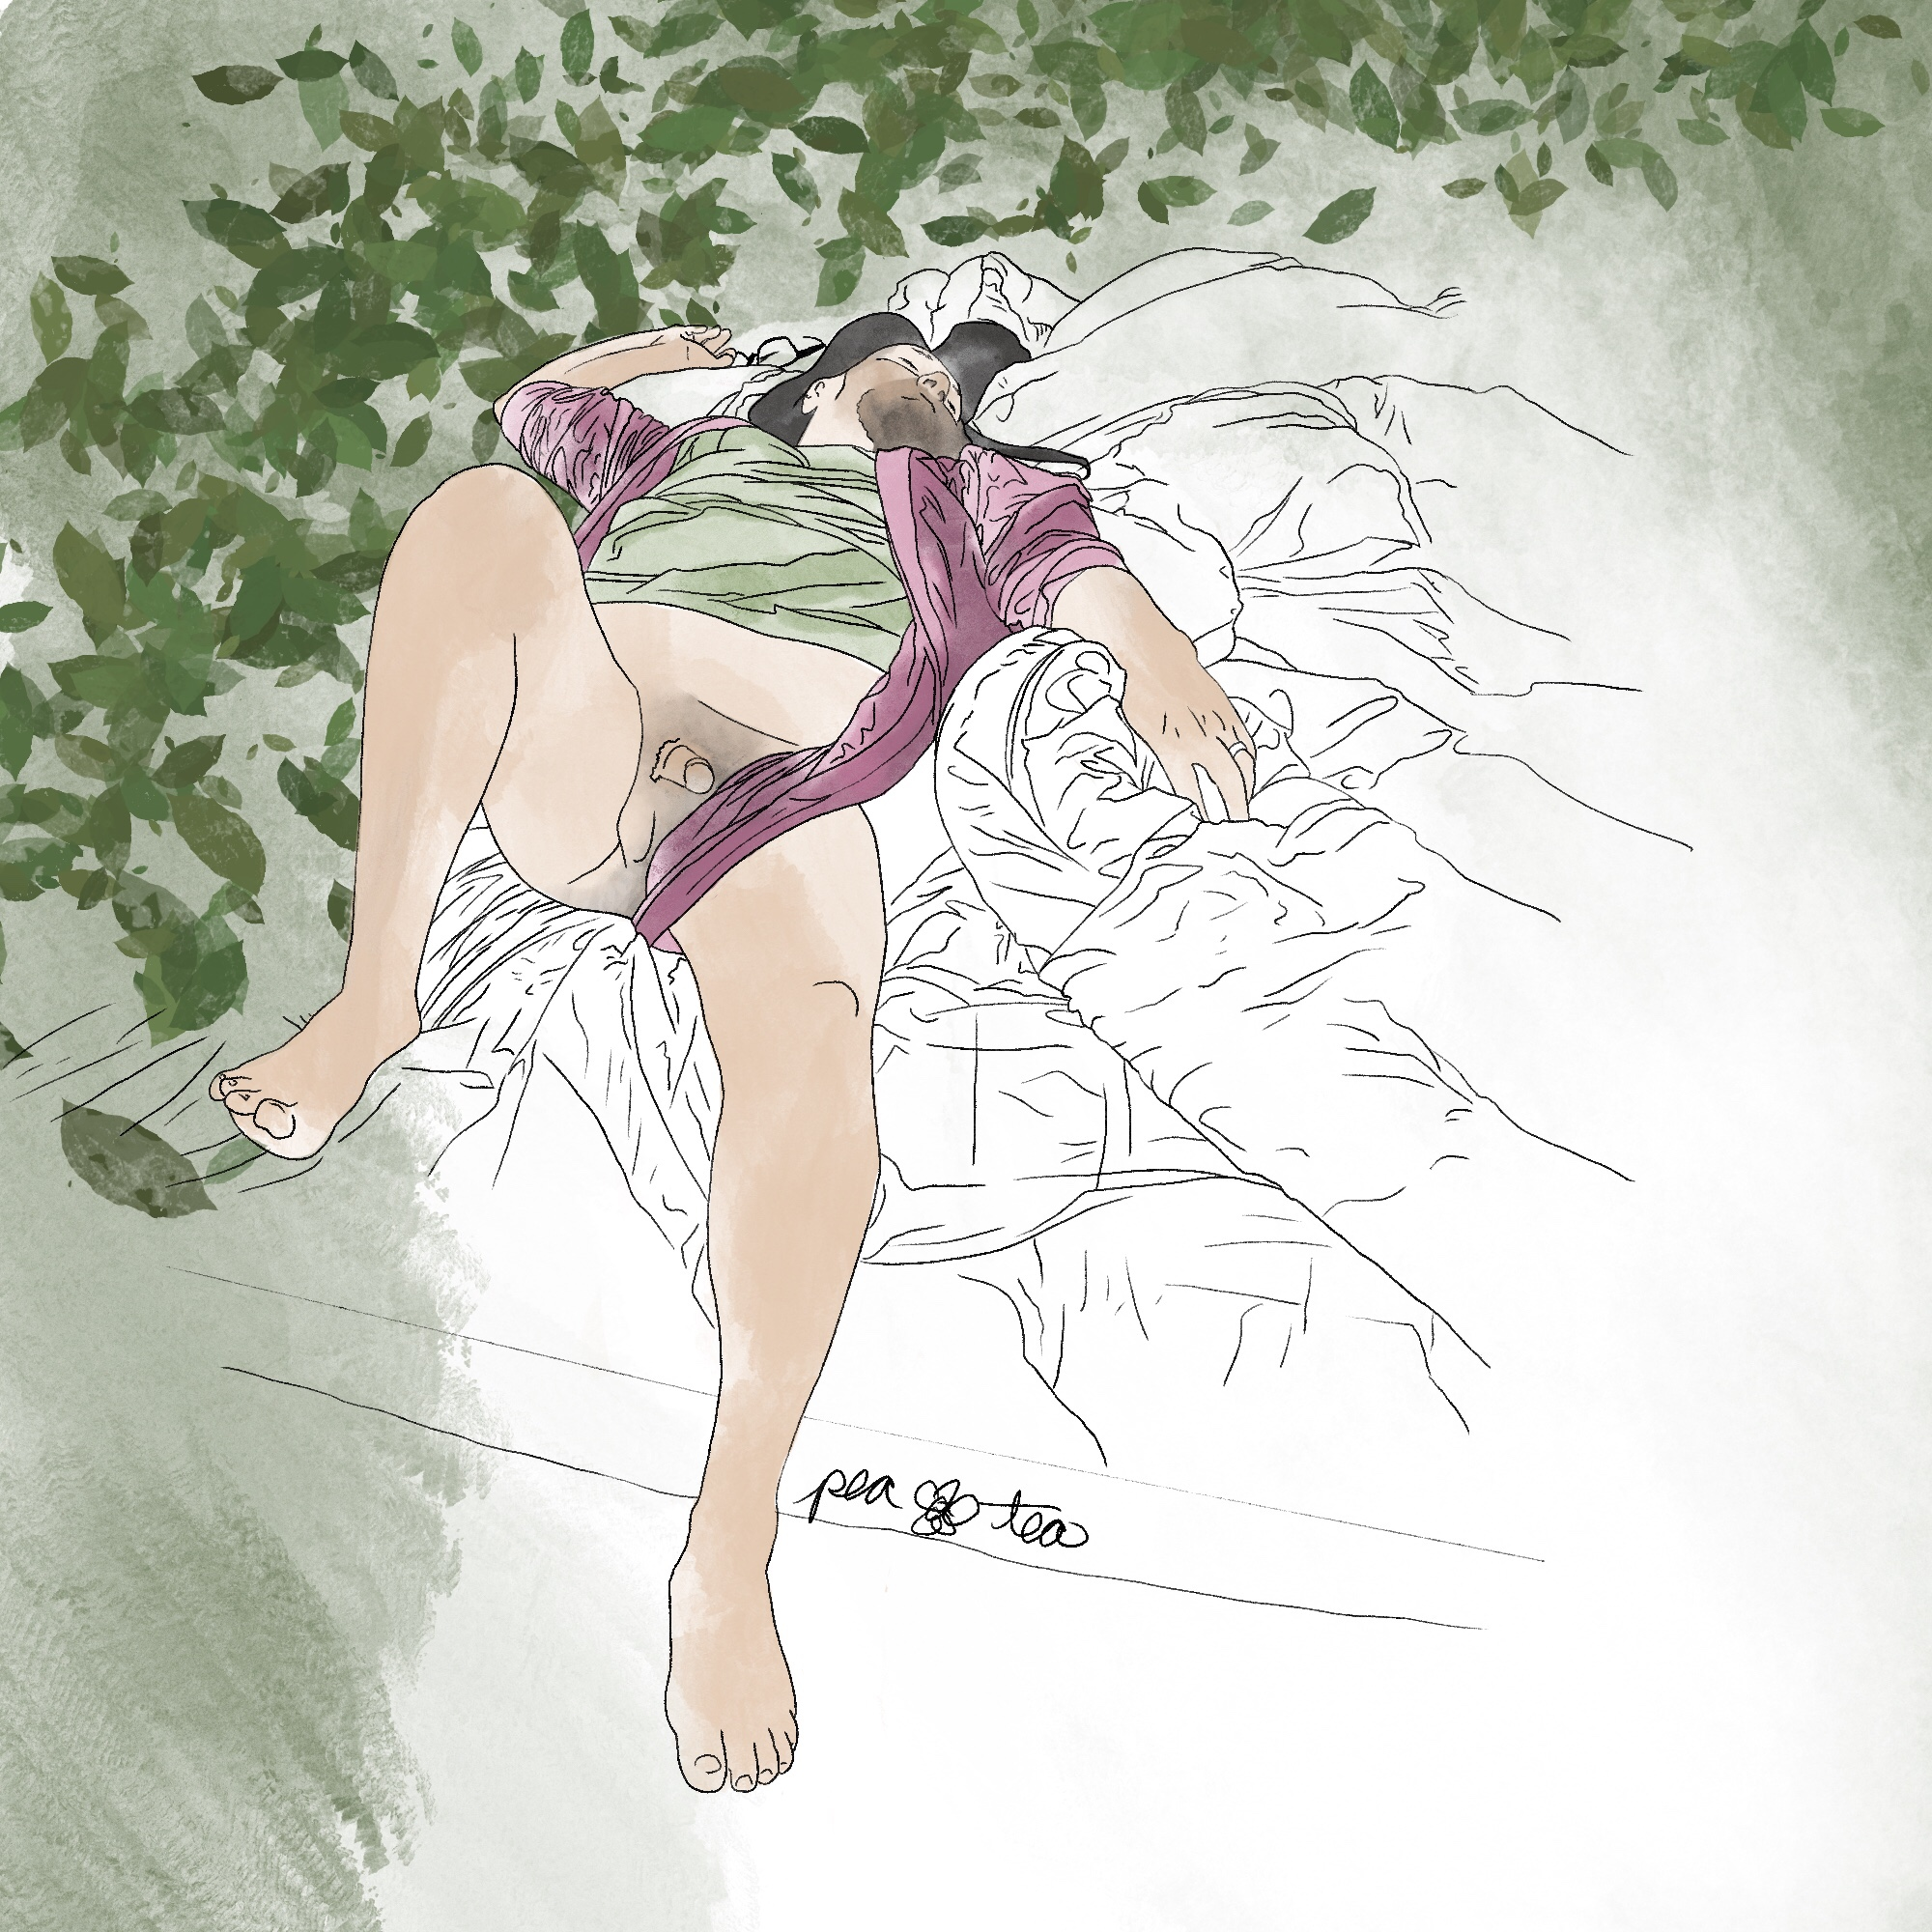 A man with long dark hair lays sleeping on his back with one knee up, and one leg hanging off of the bed. He is wearing a red robe, open, and a green shirt. He is nude from the waist down, an a pair of glasses lays next to one outstretched hand. Green watercolor leaves sweep up one side of the image, and circle over his head.